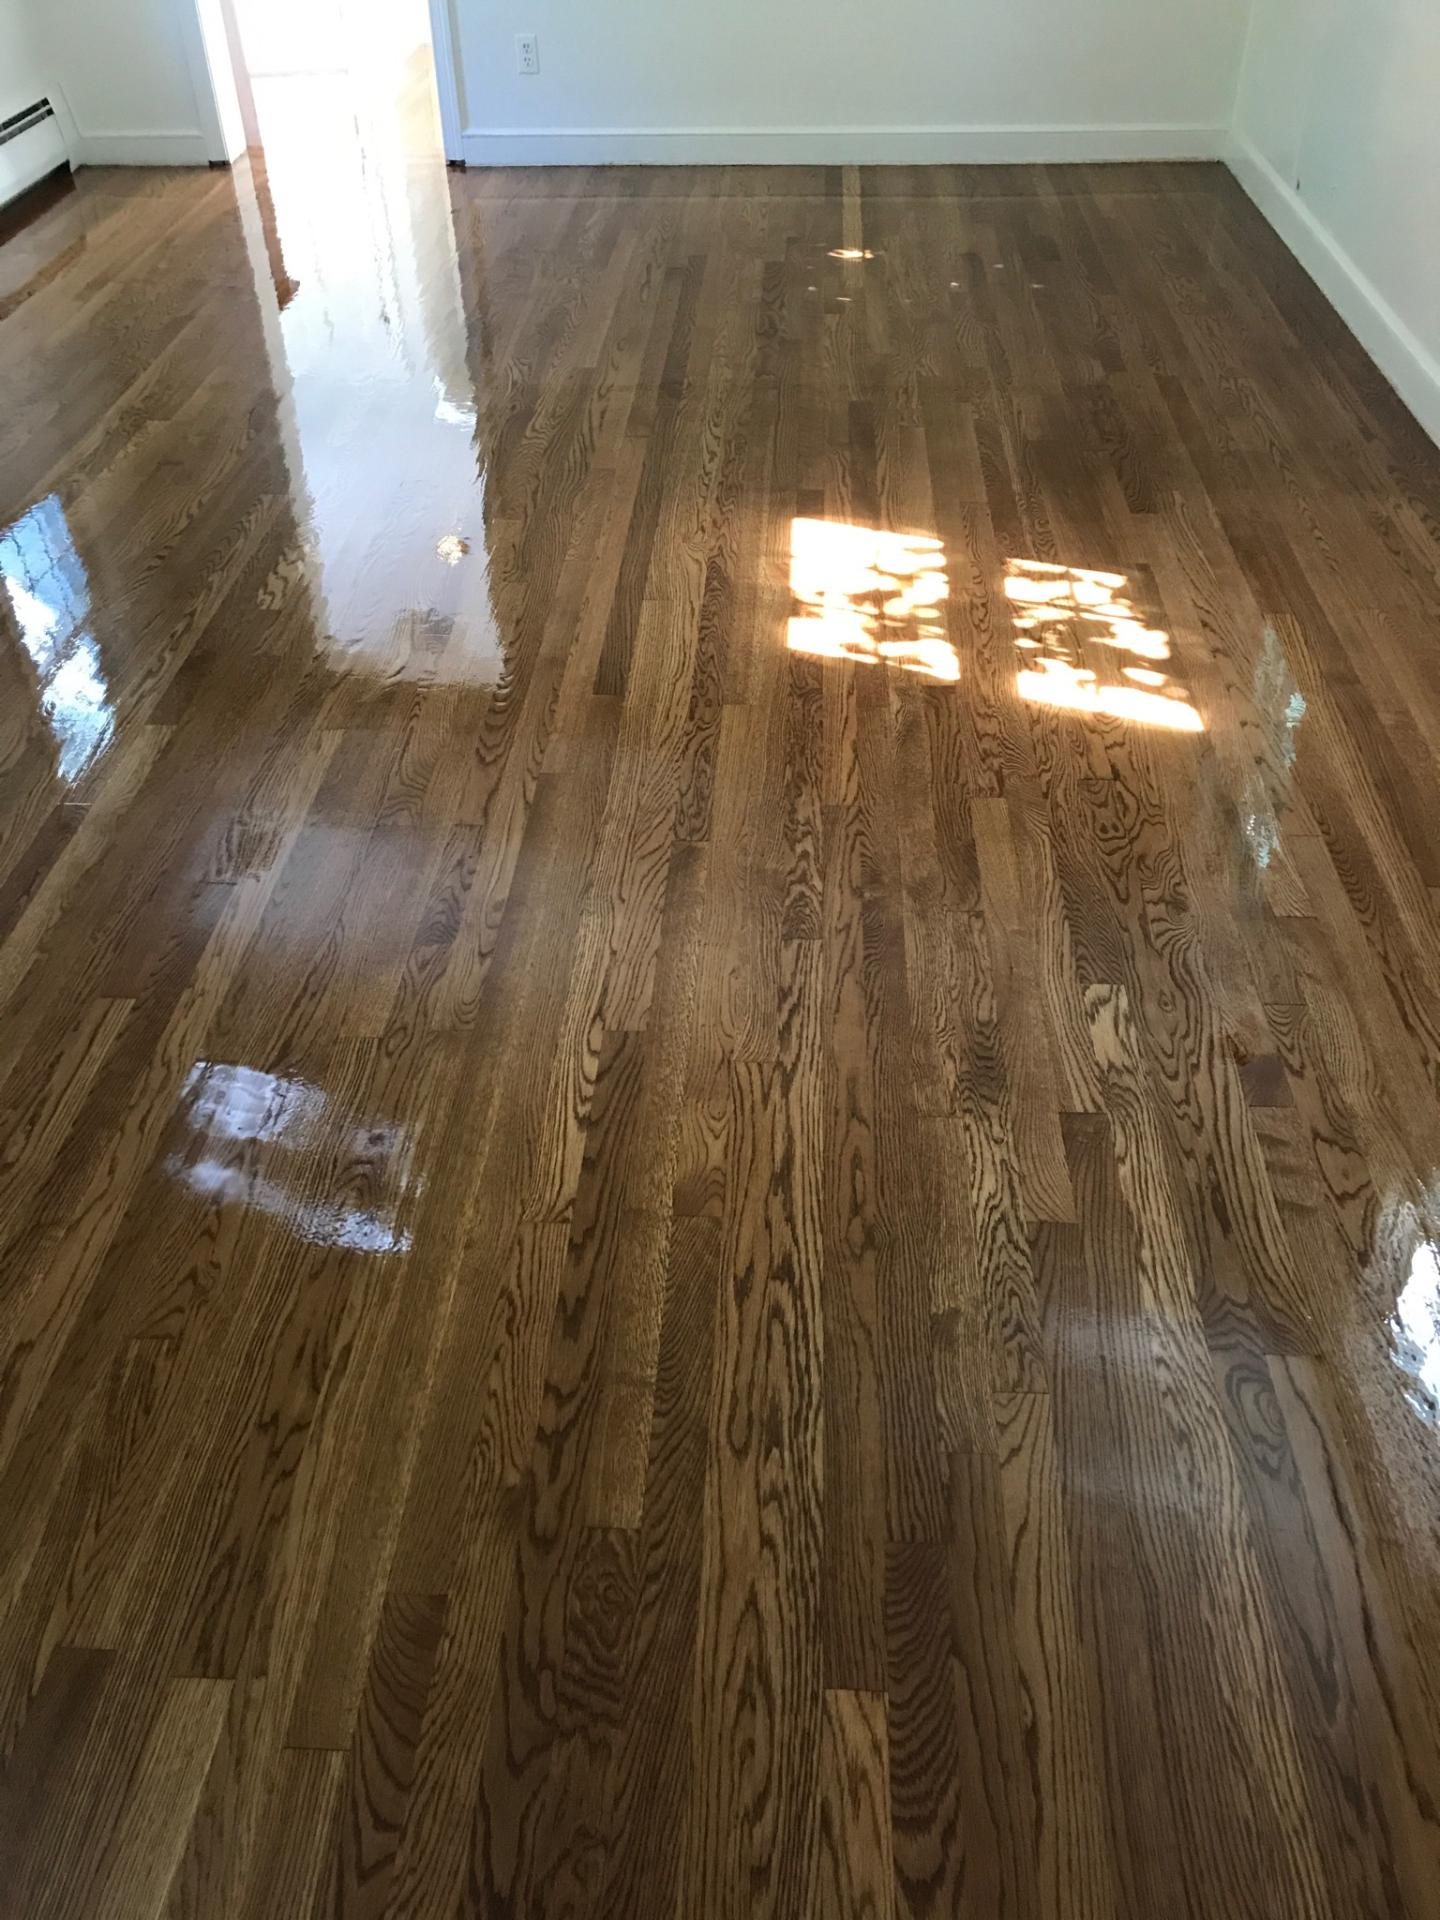 Oak Wood Stains ~ White oak hardwood floors with golden brown stain